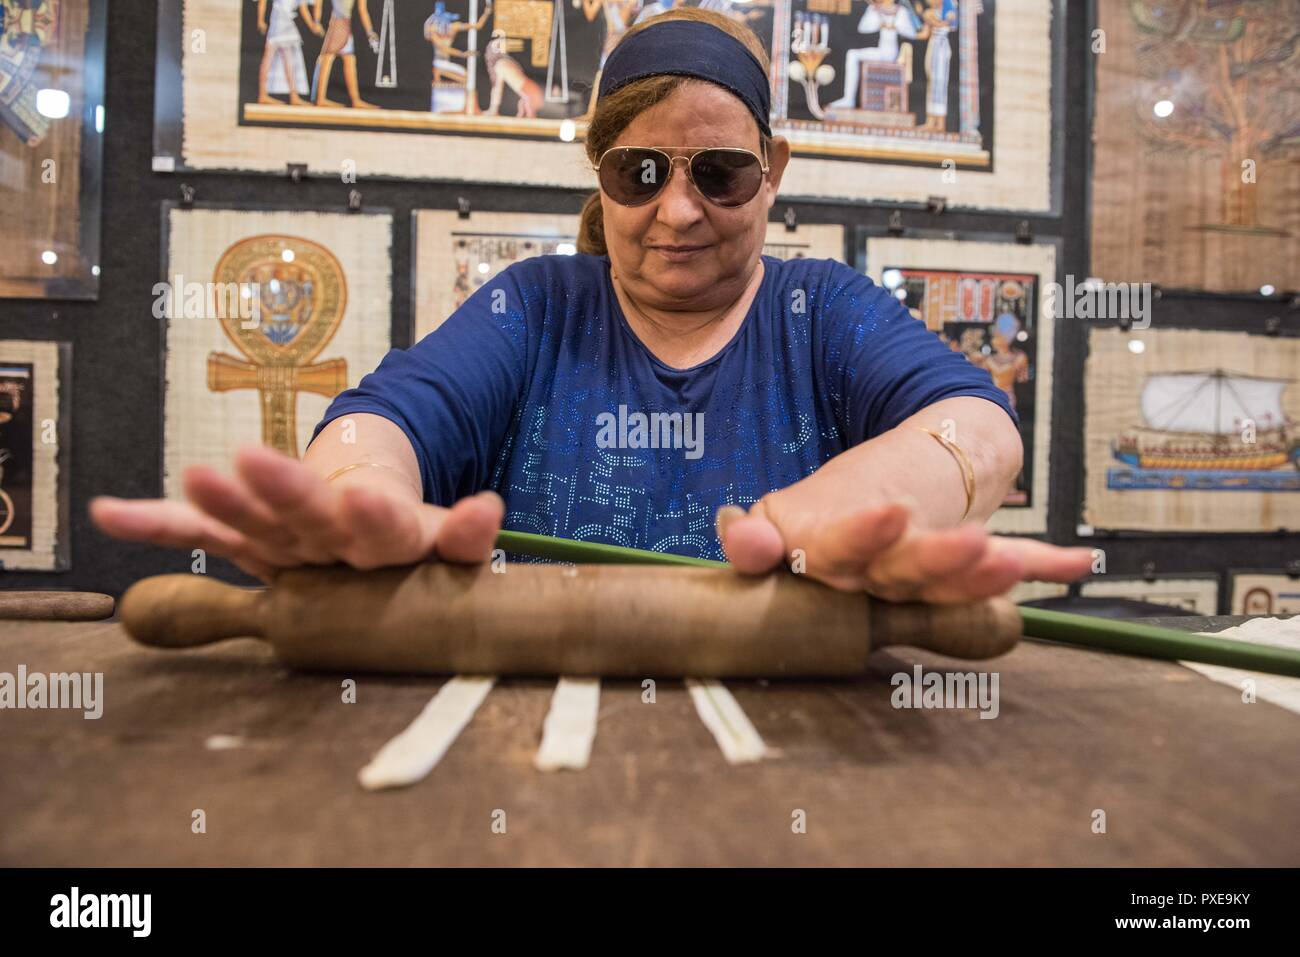 Giza, Egypt. 20th Oct, 2018. A shop assistant squeezes the stems of papyrus plant during a demonstration of making papyrus at a souvenir shop in Giza, Egypt, on Oct. 20, 2018. Made from papyrus plant stems, the papyrus was used for writing and drawing on by ancient Egyptians thousands years ago. Nowadays, with the ancient Egyptian writings and Pharaonic drawings, papyrus has always been an interesting souvenir bought by tourists in Egypt. Credit: Meng Tao/Xinhua/Alamy Live News - Stock Image